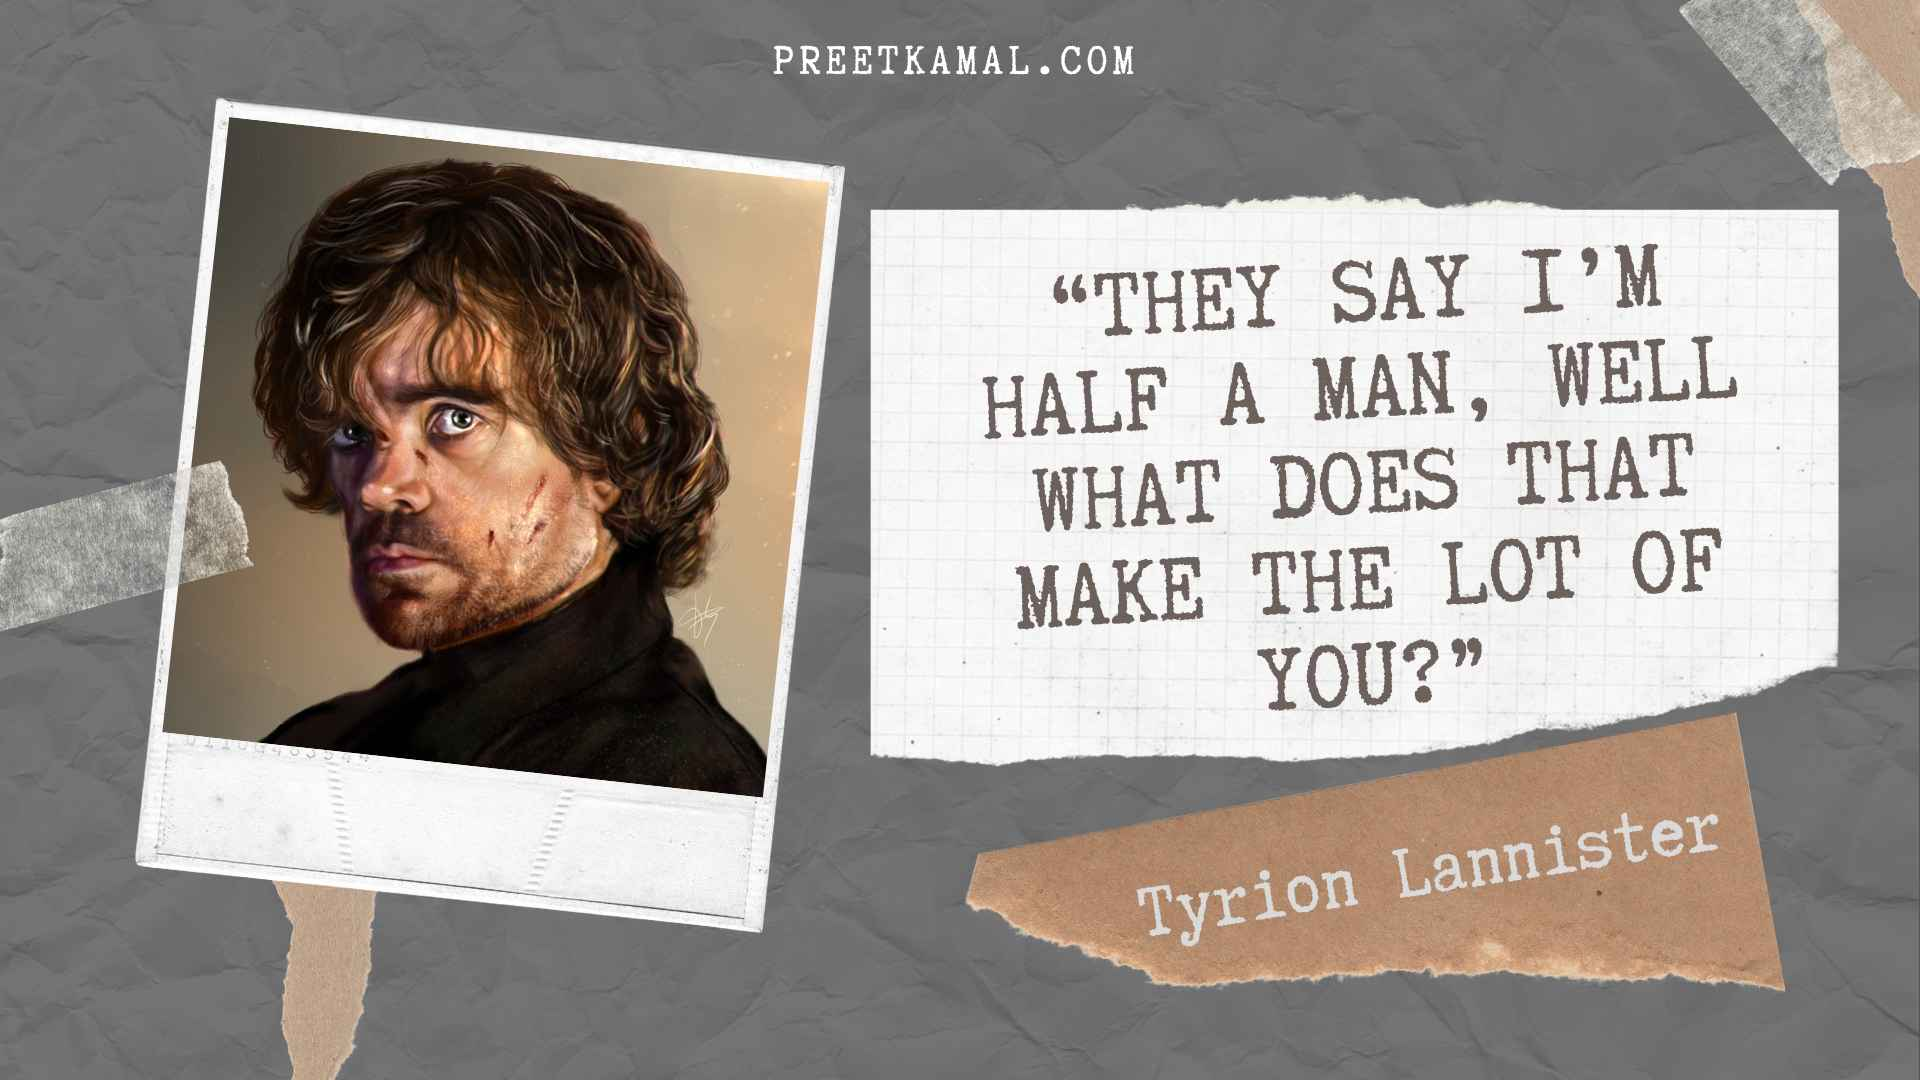 Tyrion Lannister Quotes From GOT